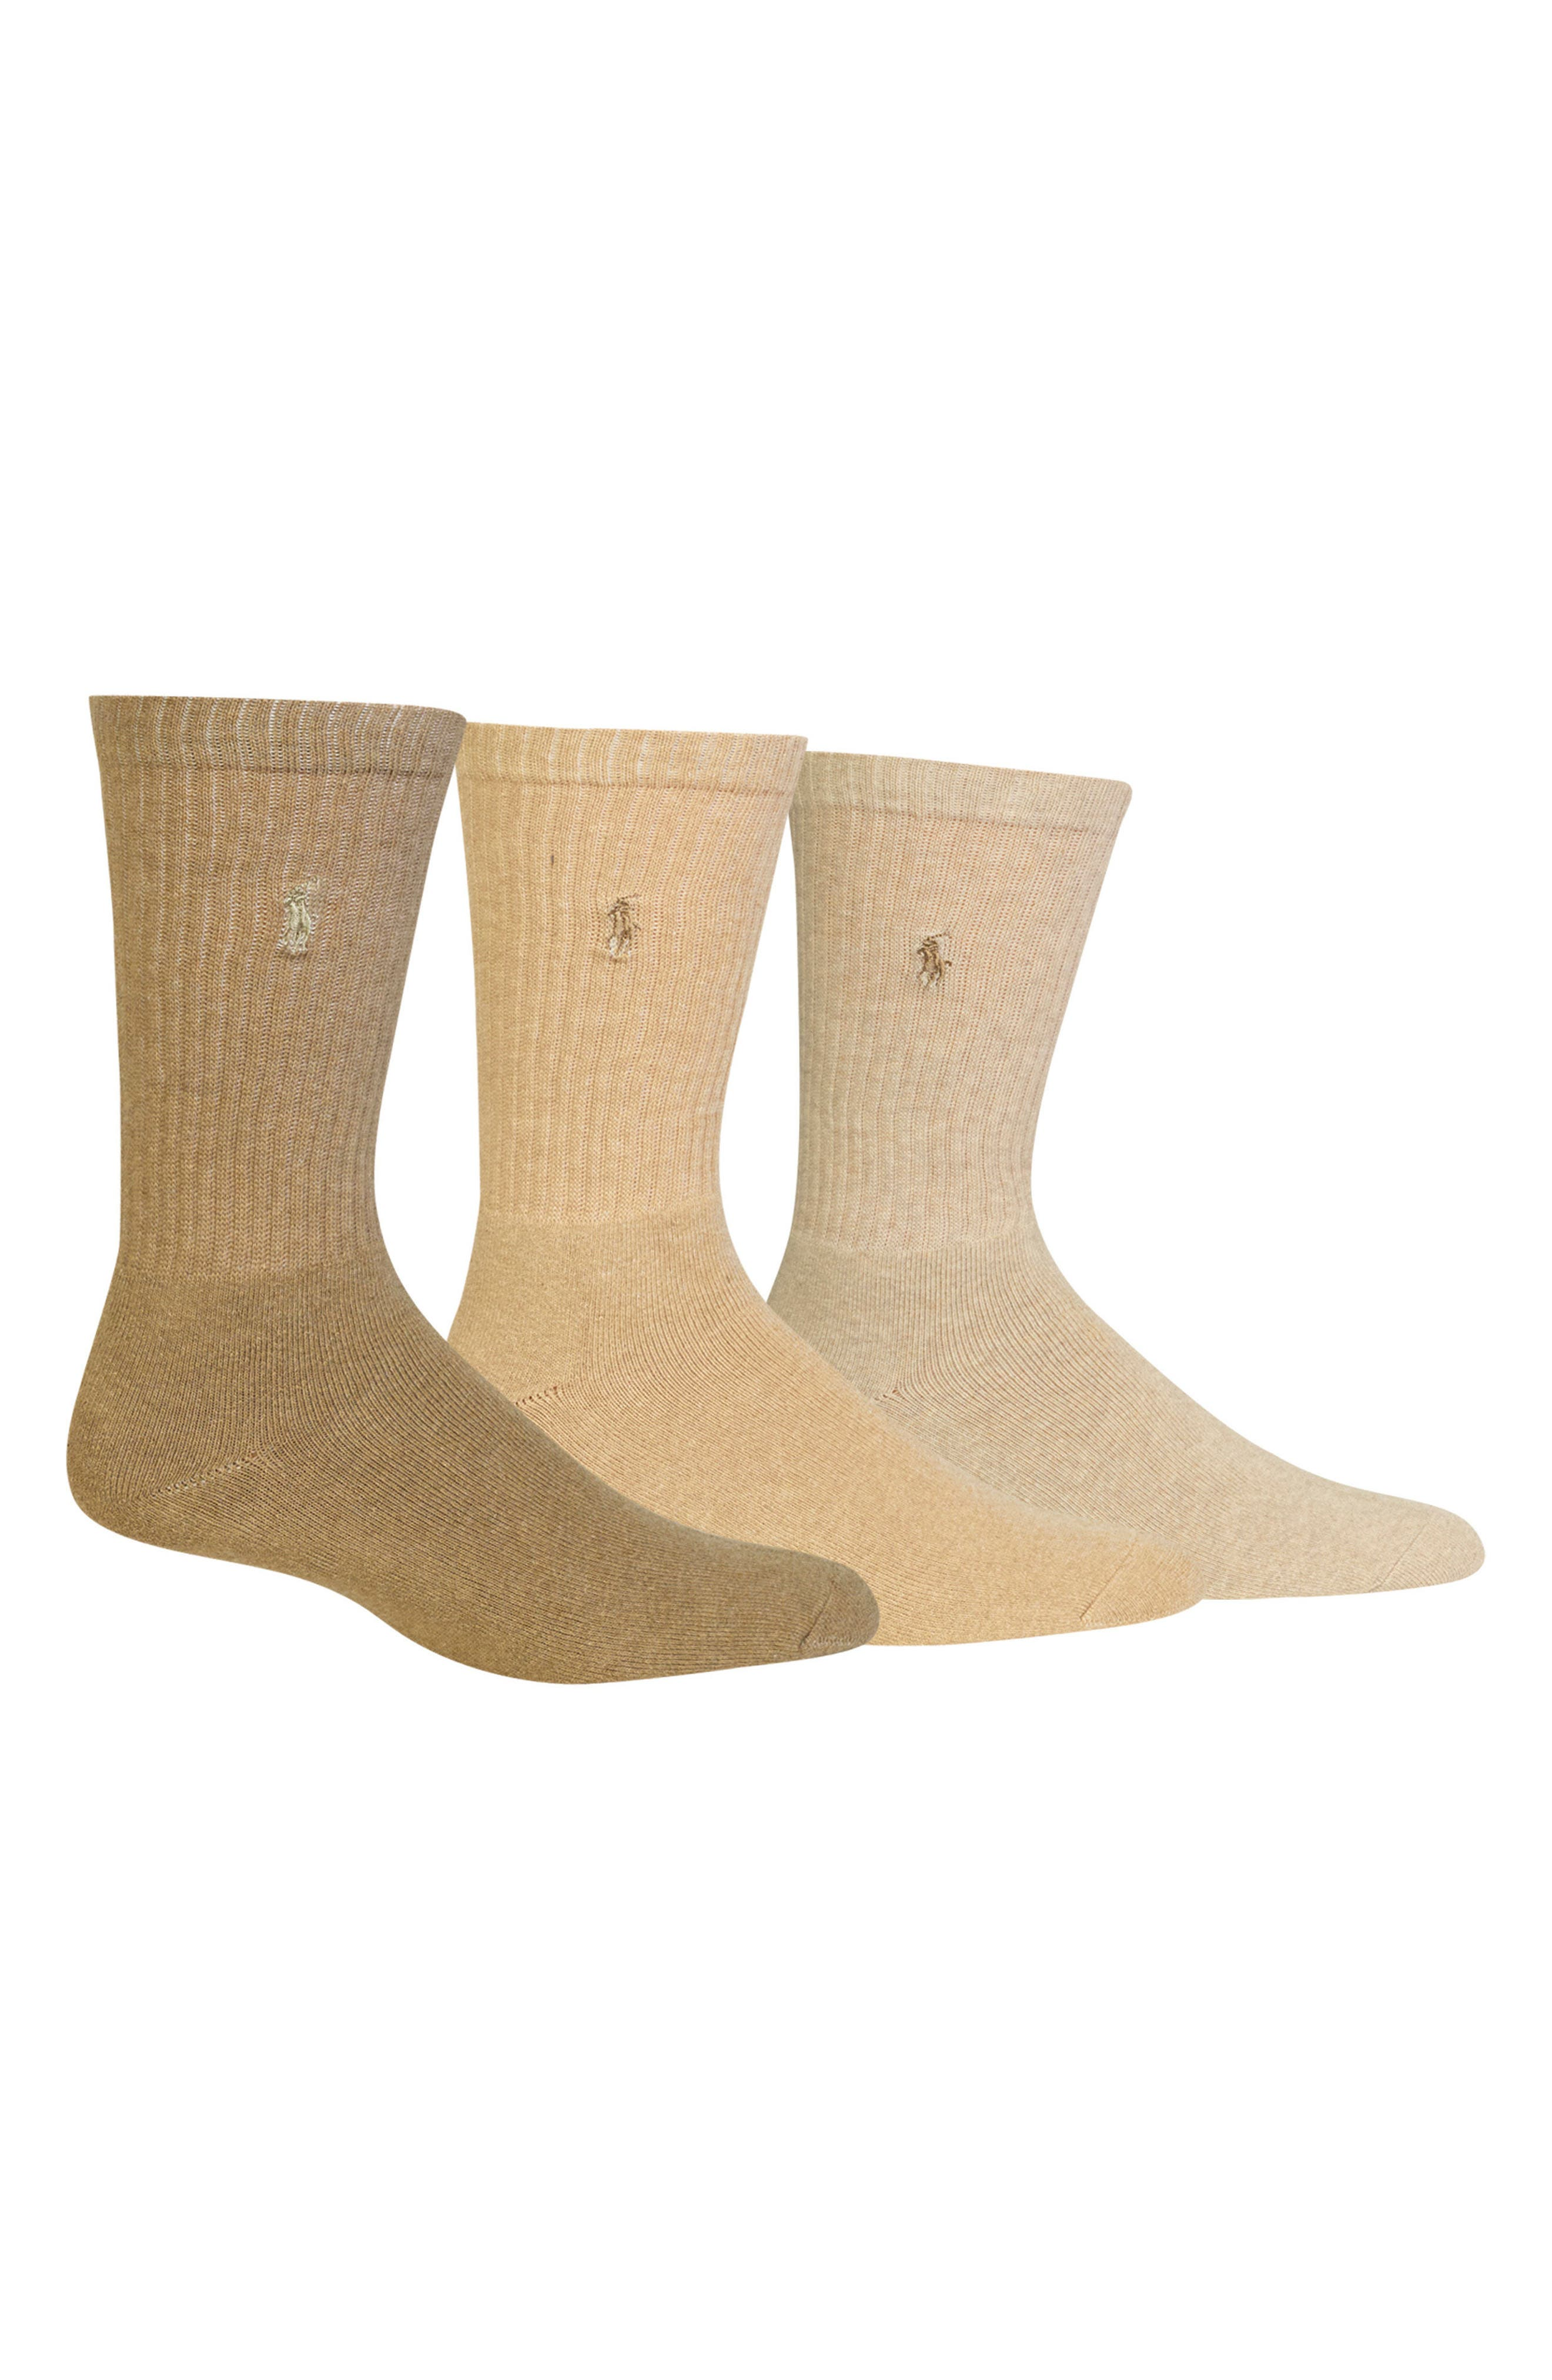 3-Pack Crew Socks,                             Alternate thumbnail 2, color,                             TAUPE/ OYSTER/ BEIGE